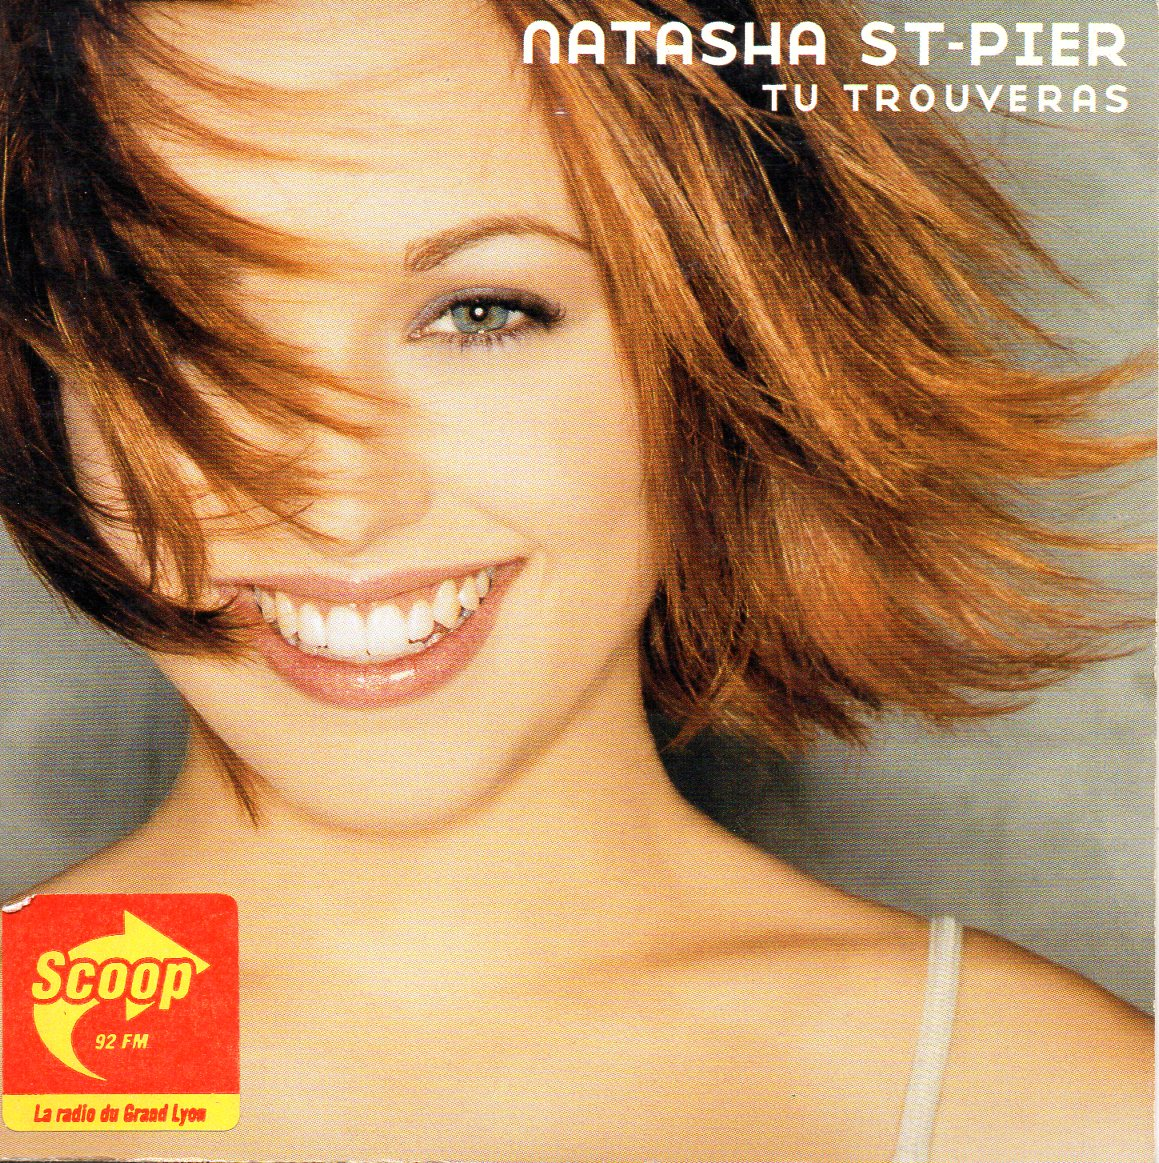 NATASHA ST-PIER & PASCAL OBISPO - Tu trouveras Promo 1-track CARD SLEEVE - CD single